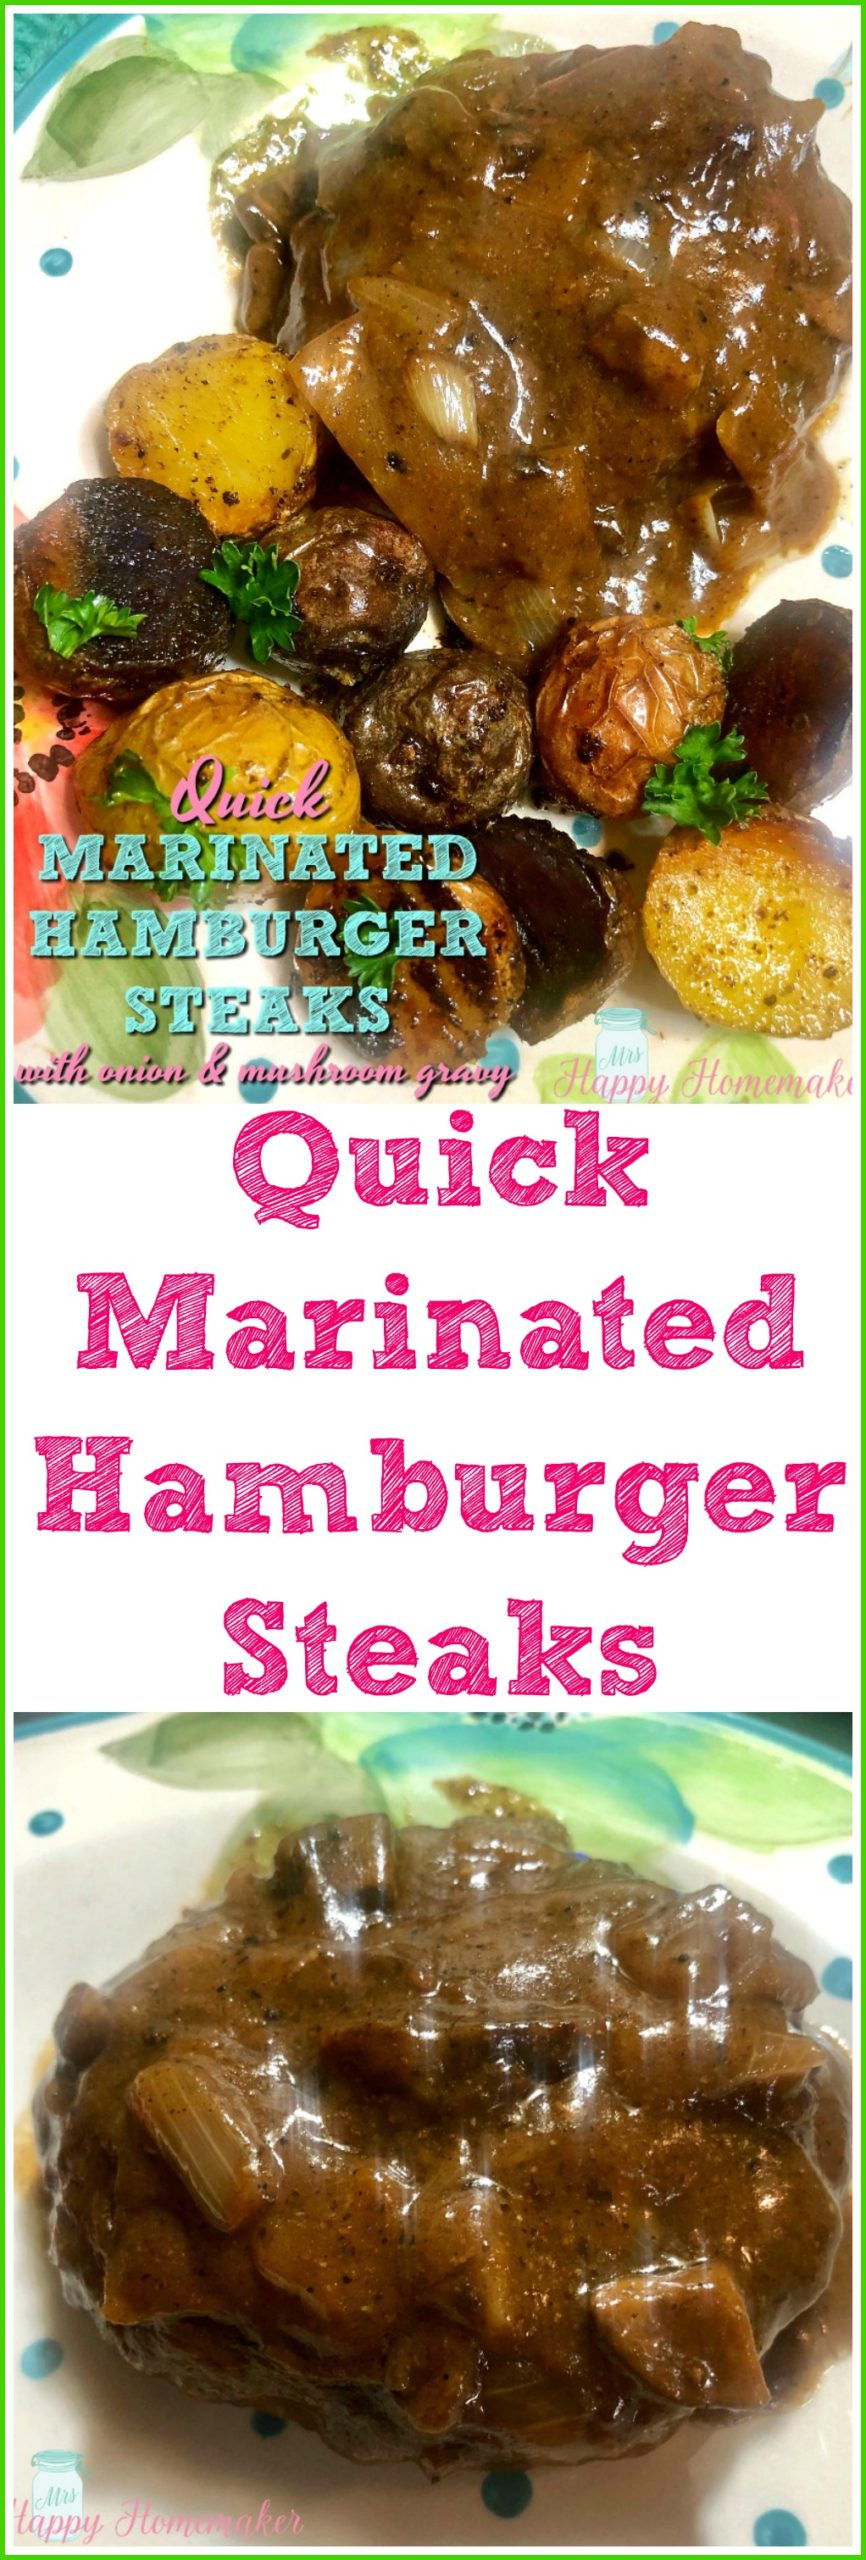 Quick Marinated Hamburger Steaks with Onion Mushroom Gravy | MrsHappyHomemaker.com @MrsHappyHomemaker